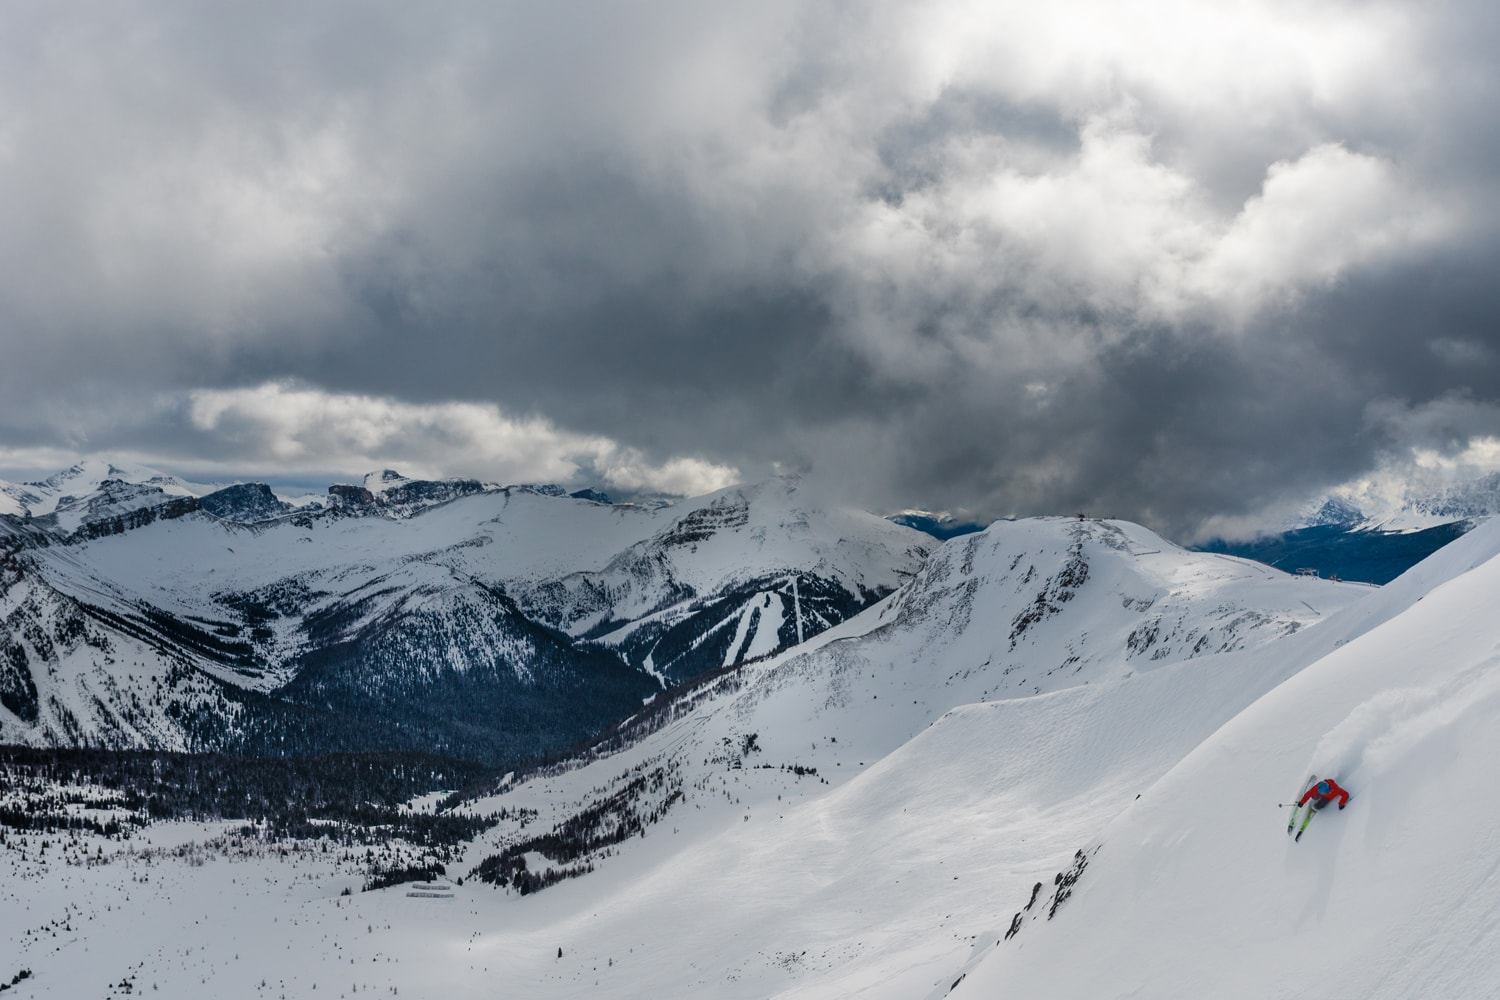 lake louise snow reports, weather, cameras | mountainwatch